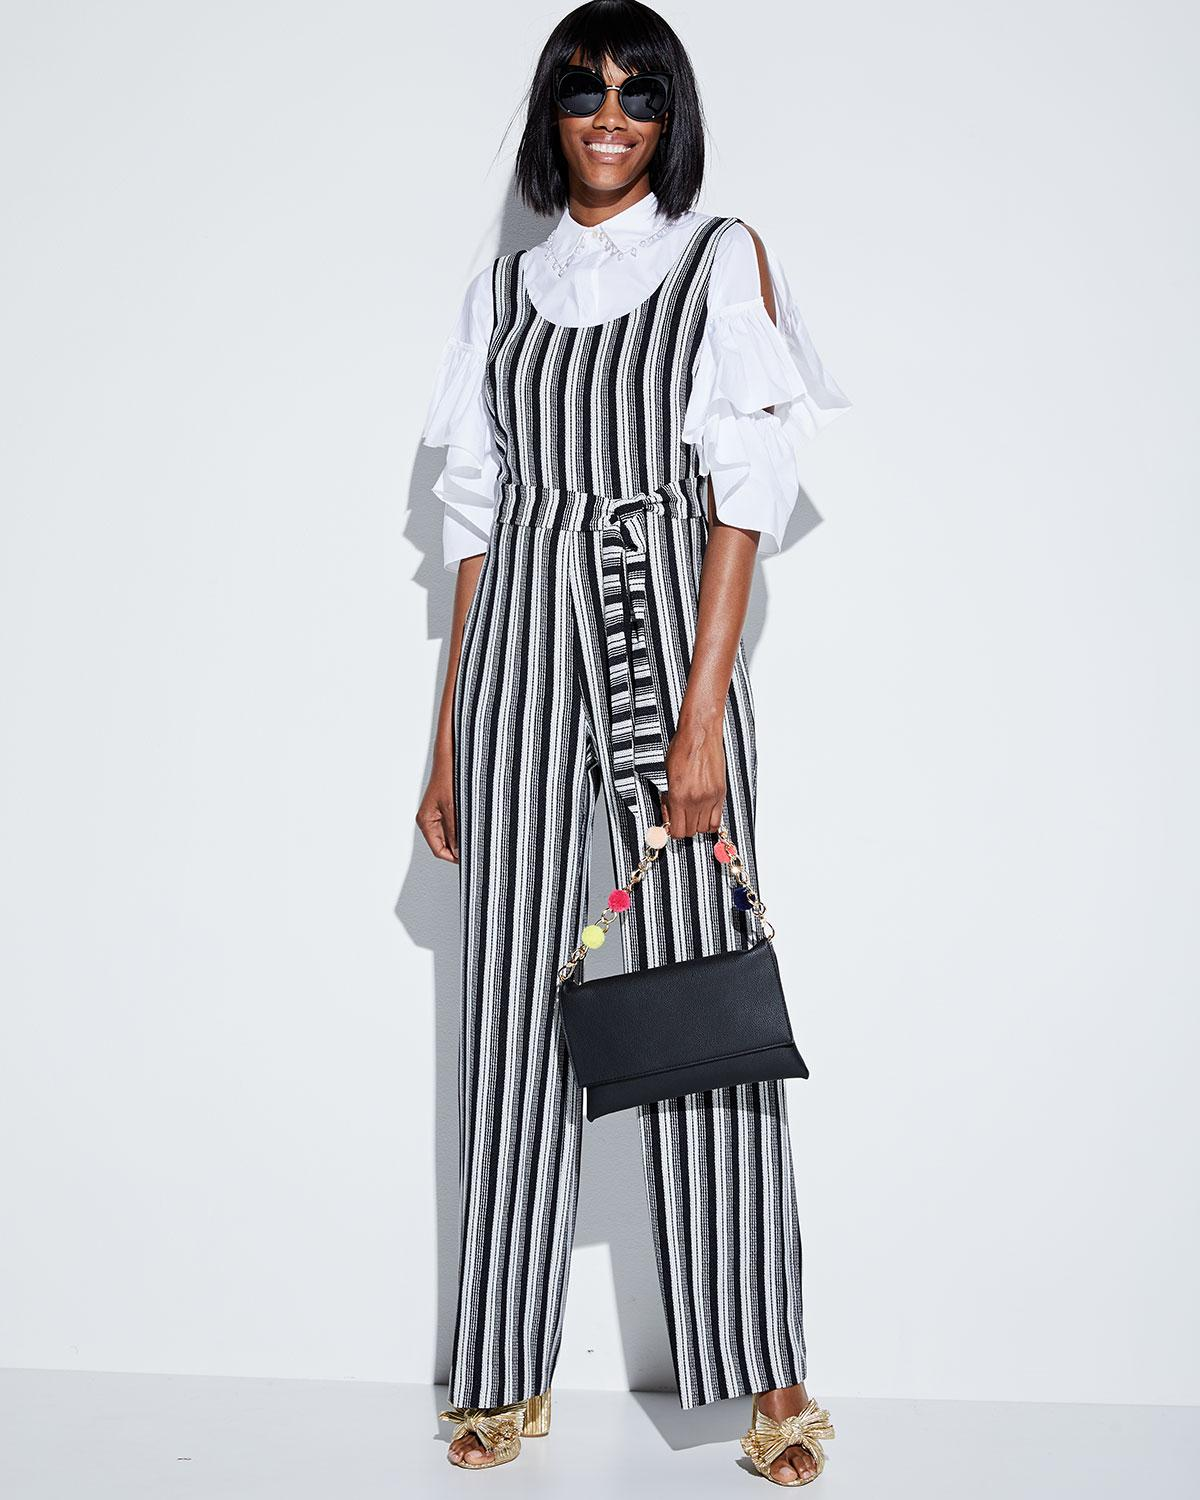 76d20219dc4 Lyst - Karl Lagerfeld Striped Belted Jumpsuit in Black - Save 34%